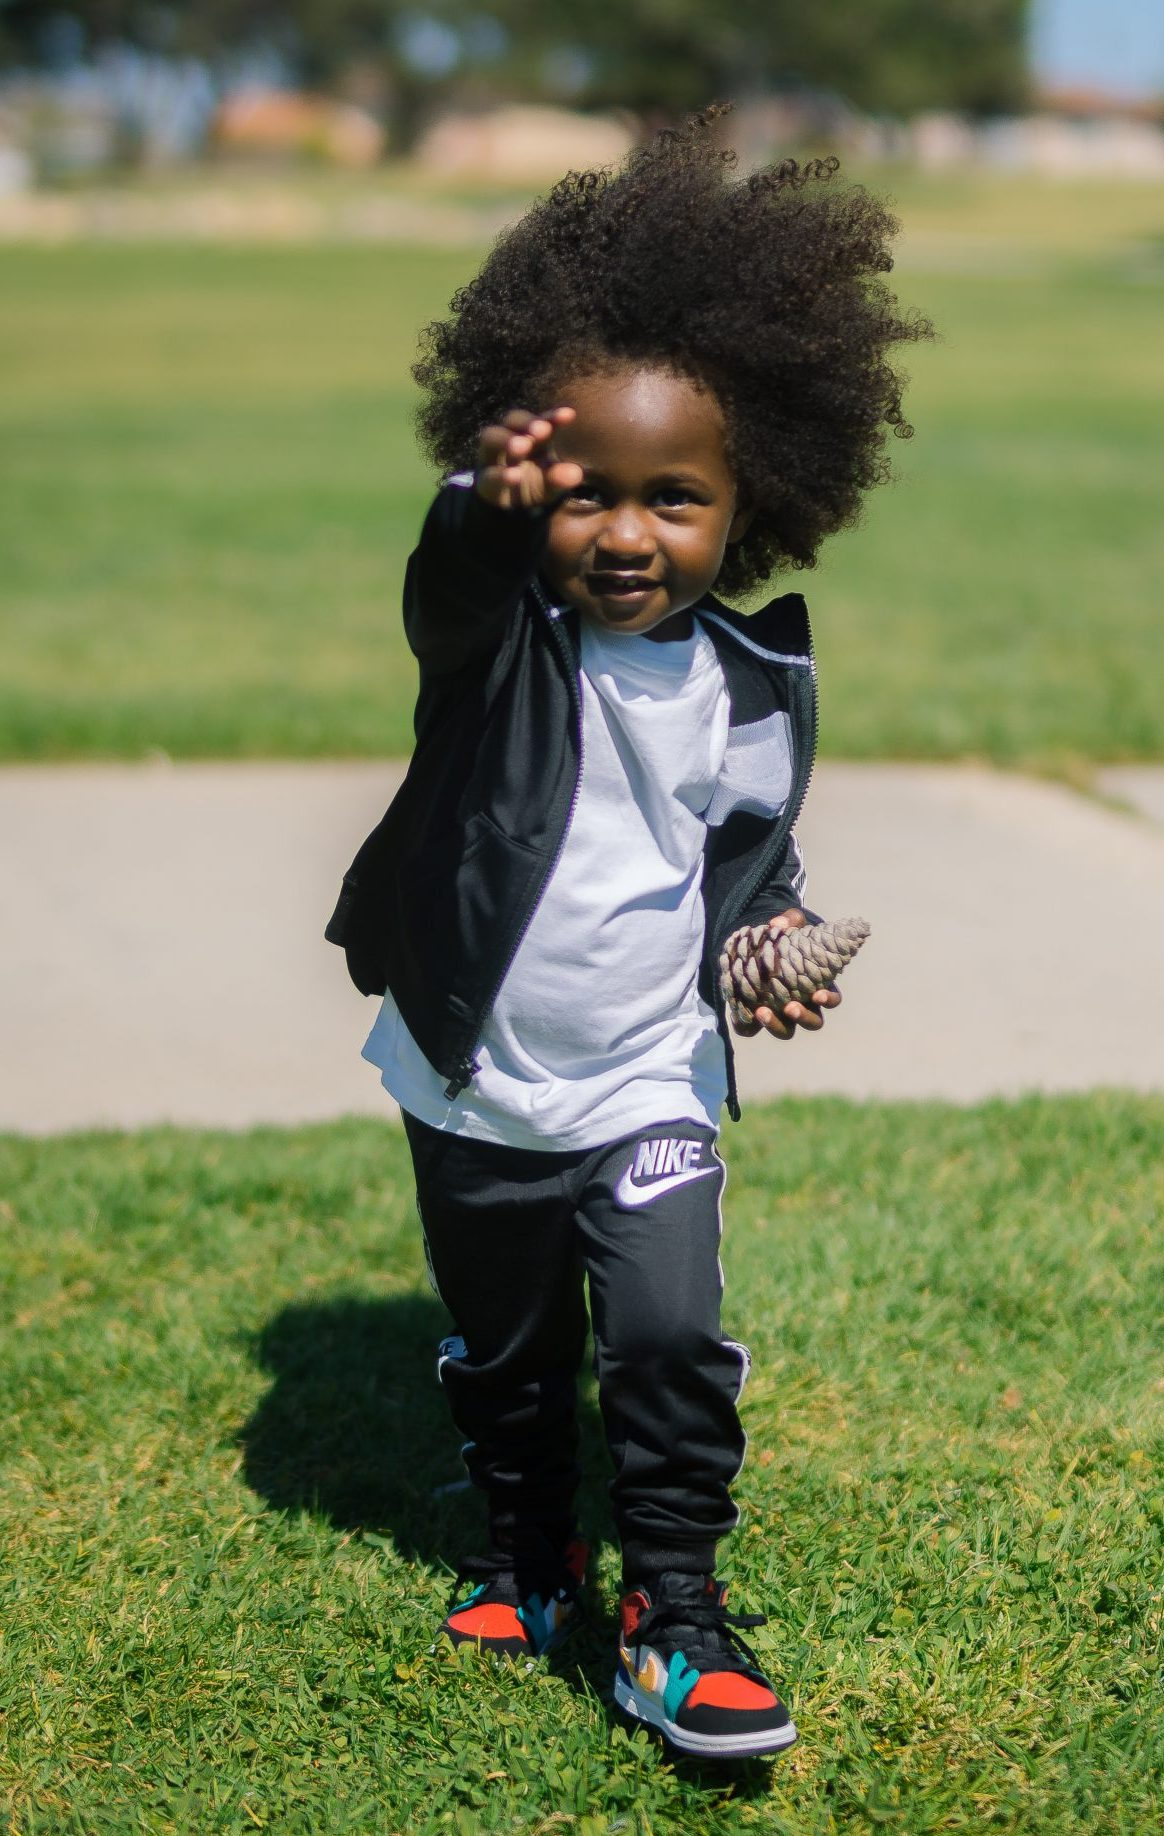 taylor-smith-m6F81ANQzvo-unsplash AA boy in sweatsuit with pinecone